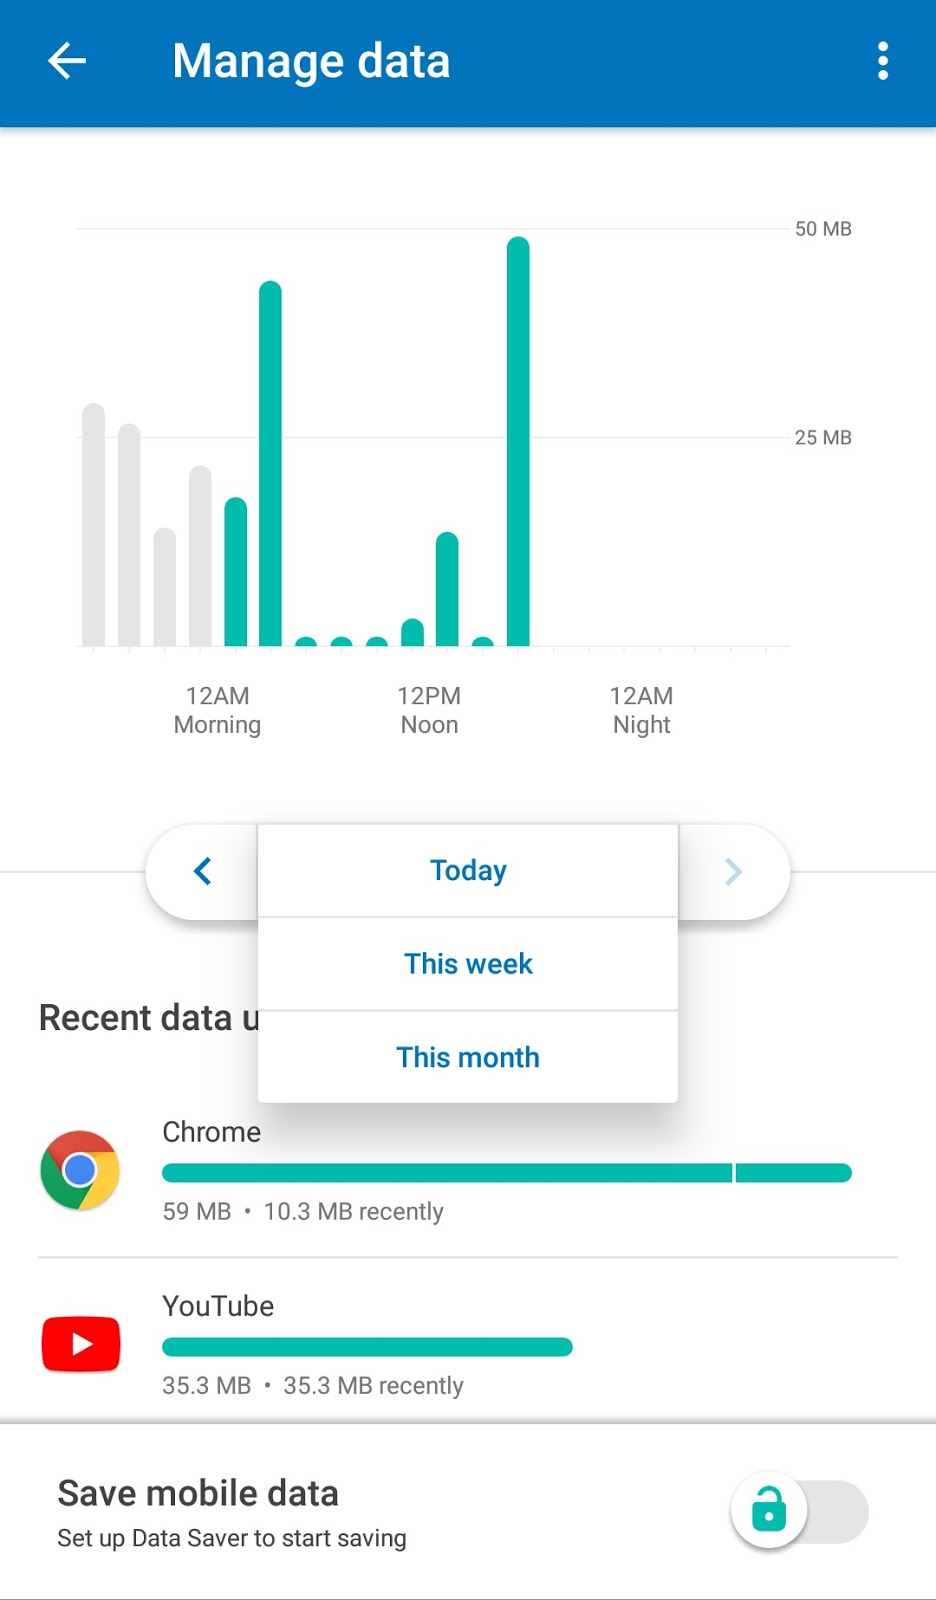 Looking back to past data usages